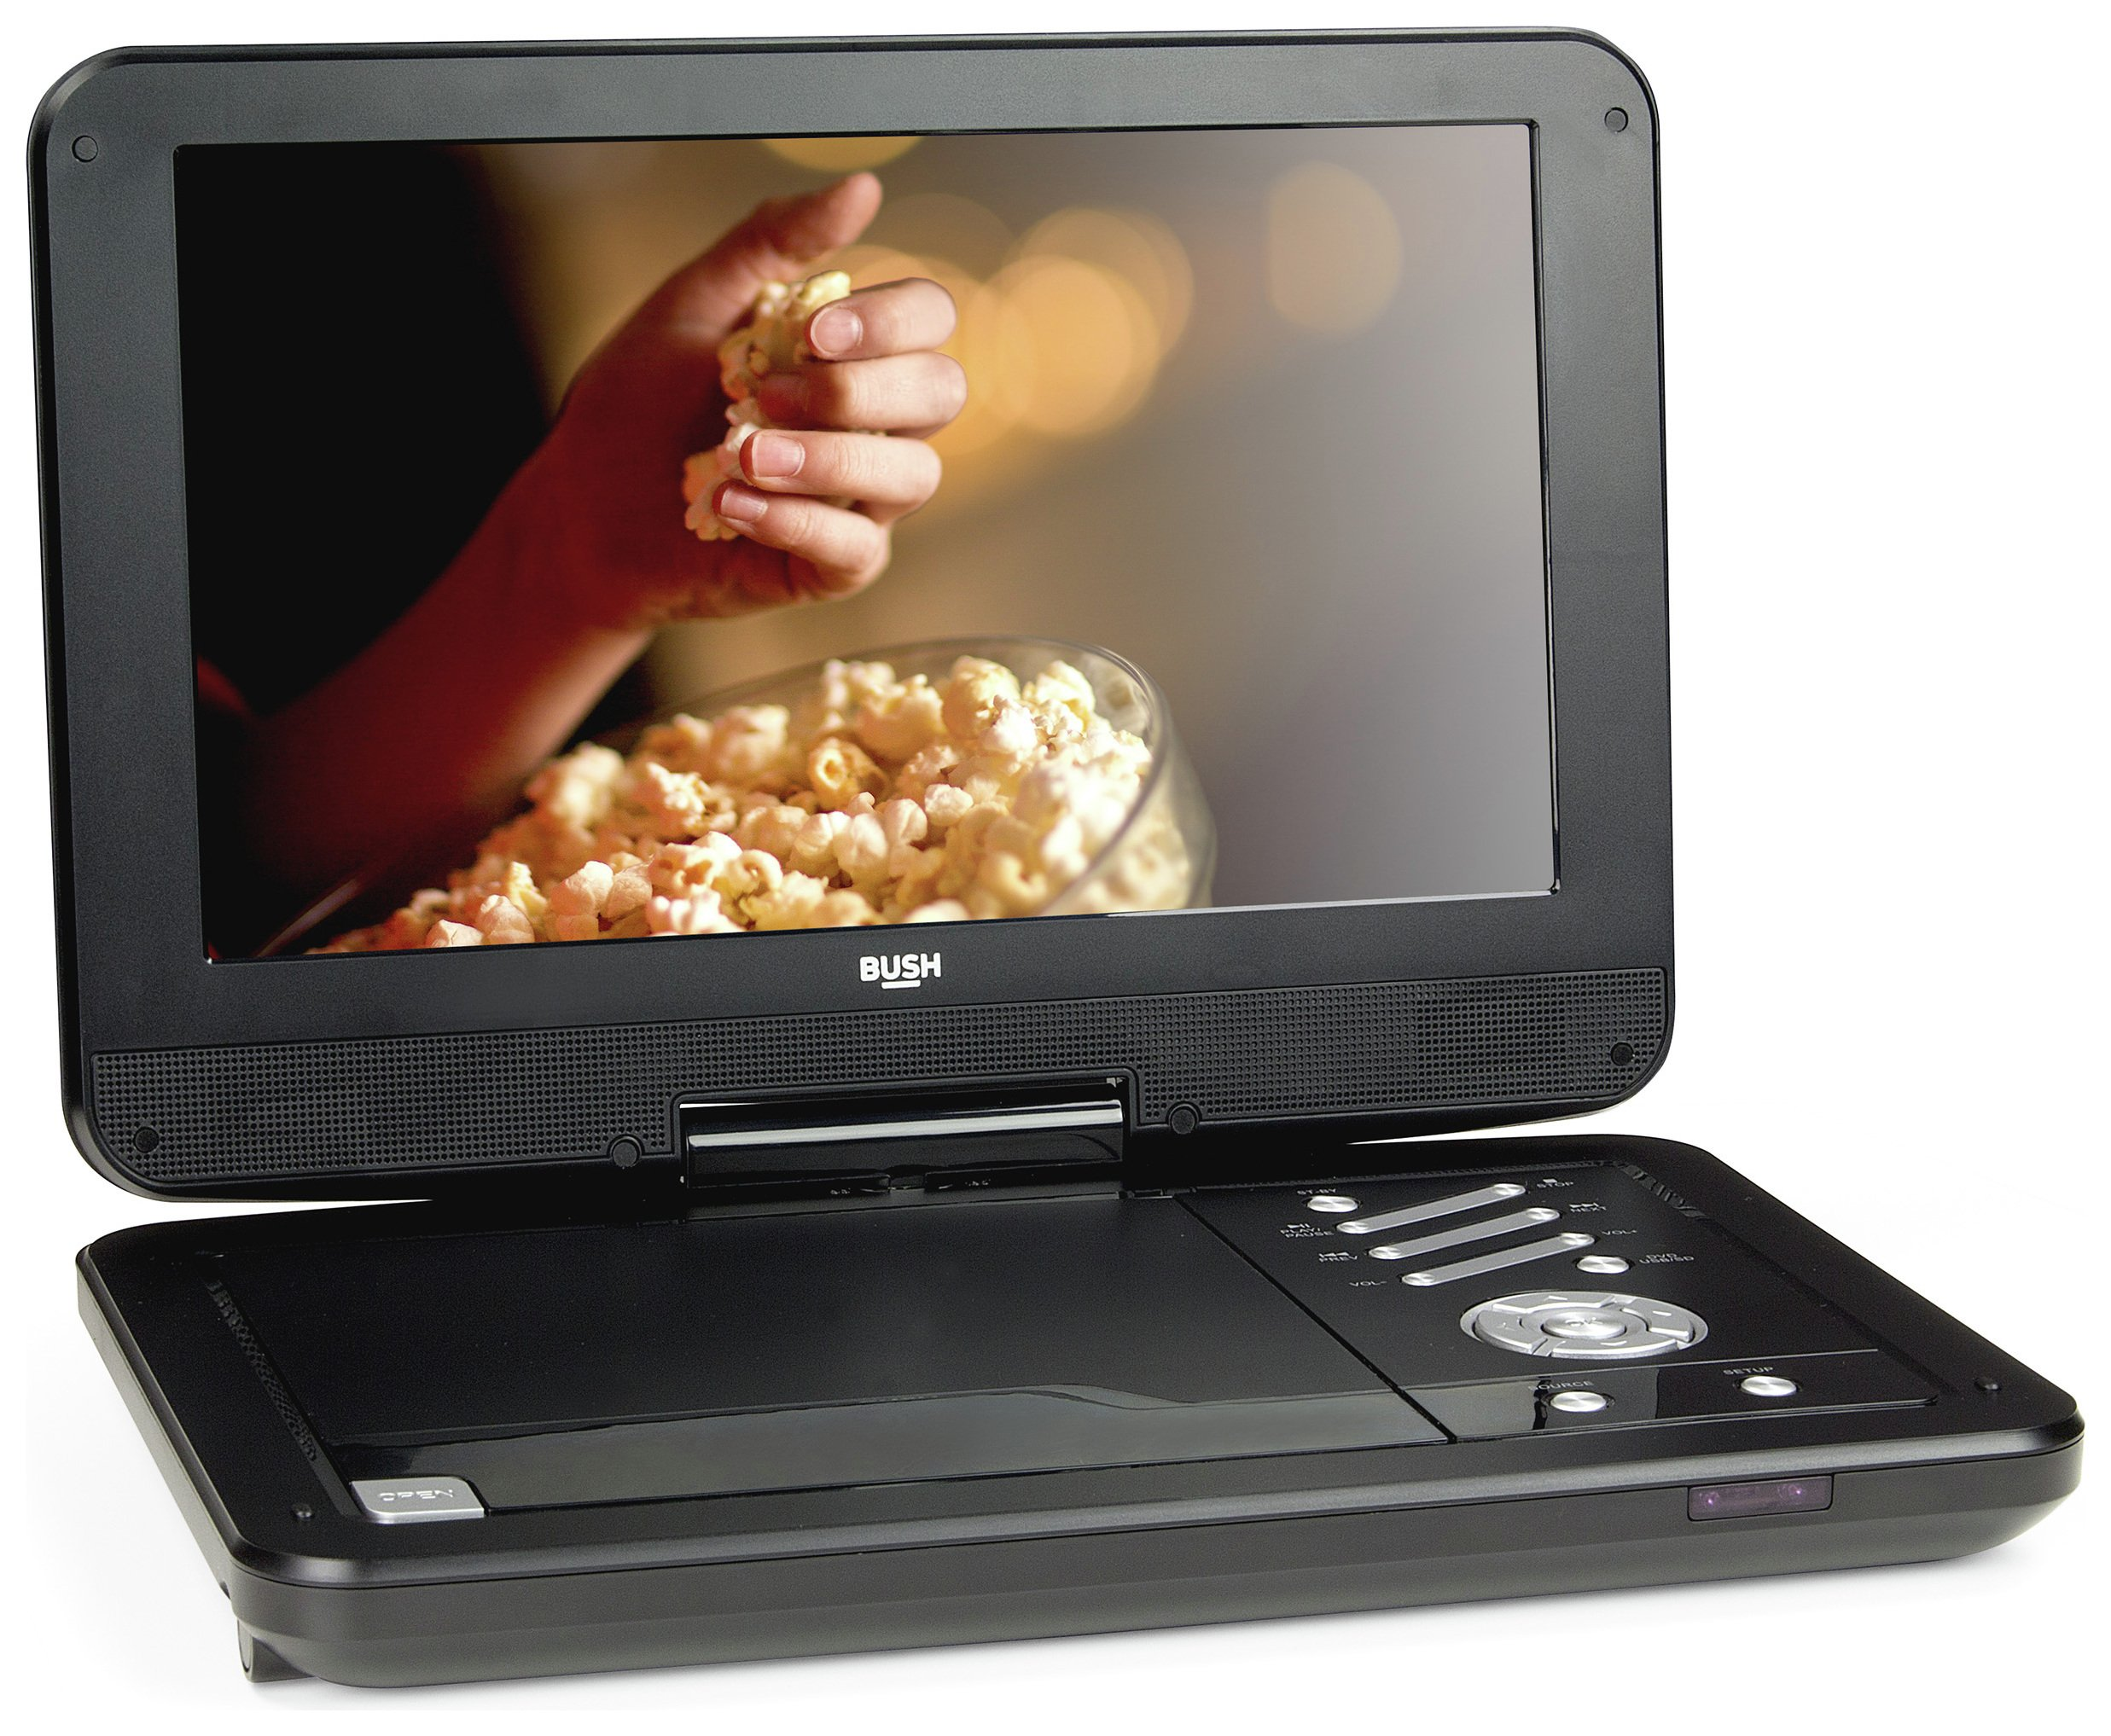 Image of Bush 12 Inch Portable DVD Player